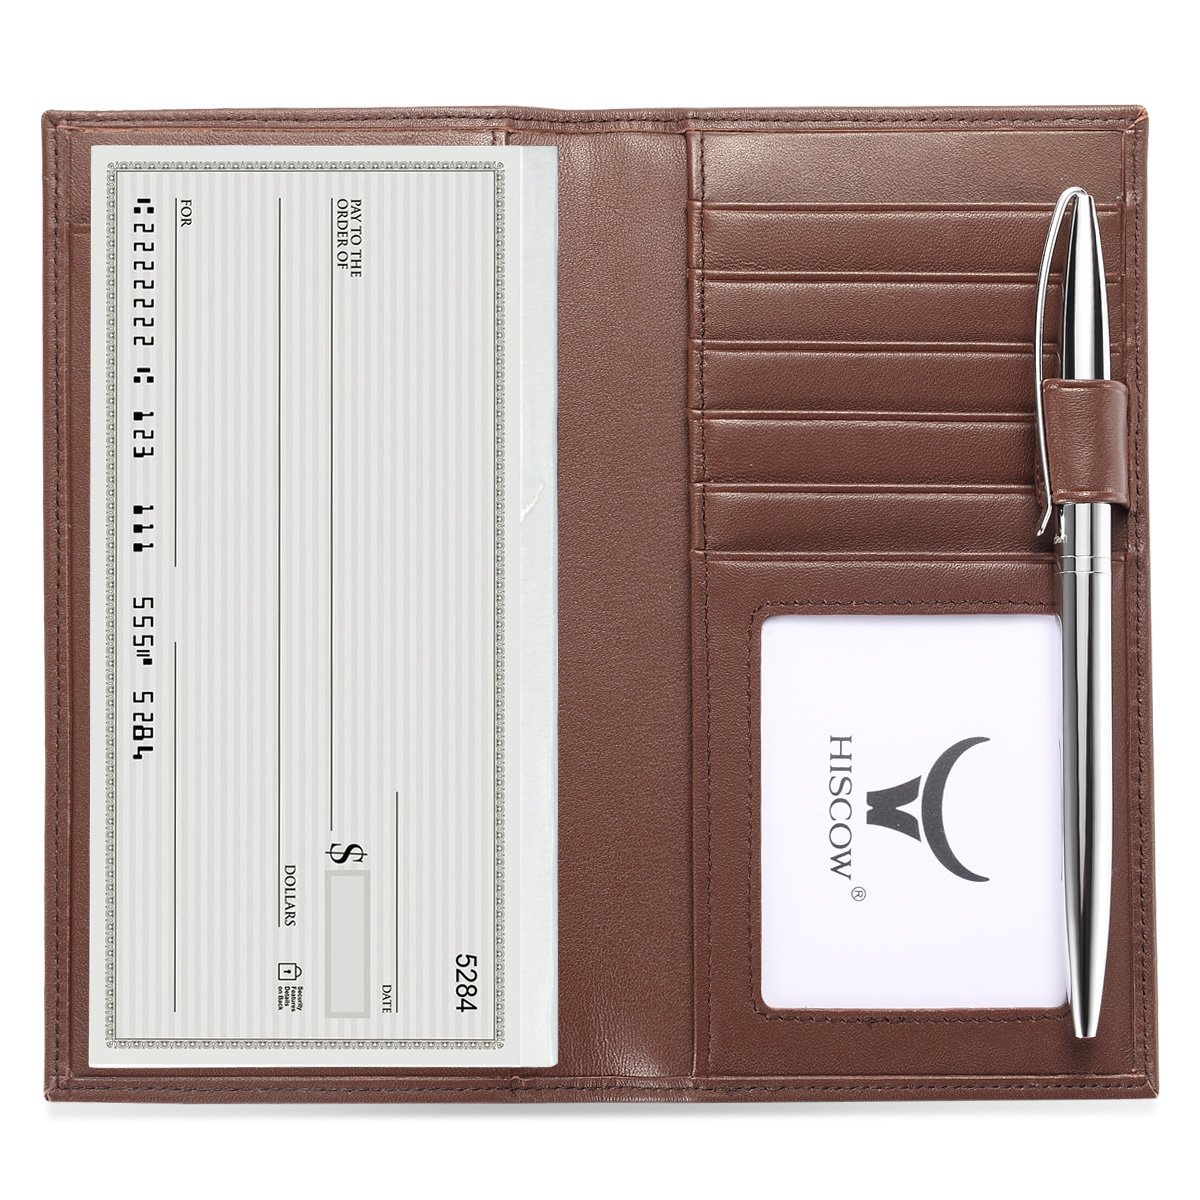 HISCOW Soft Leather Checkbook Cover & Card Holder with Divider - Italian Calfskin 11419_Black